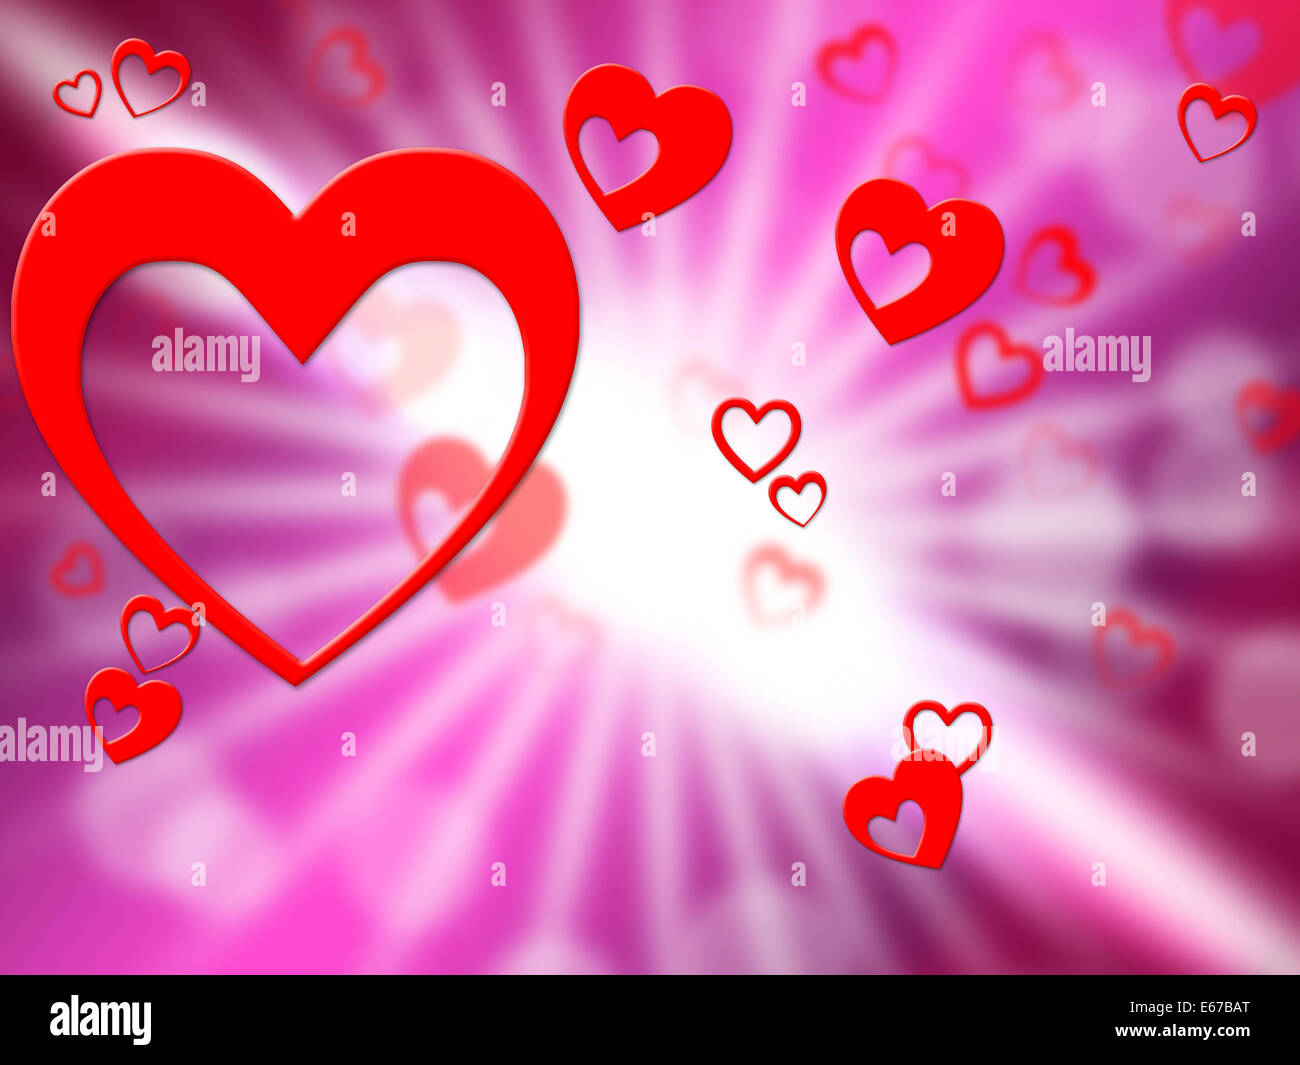 rays sunrays meaning valentine day and lovers - What Is The Meaning Of Valentines Day